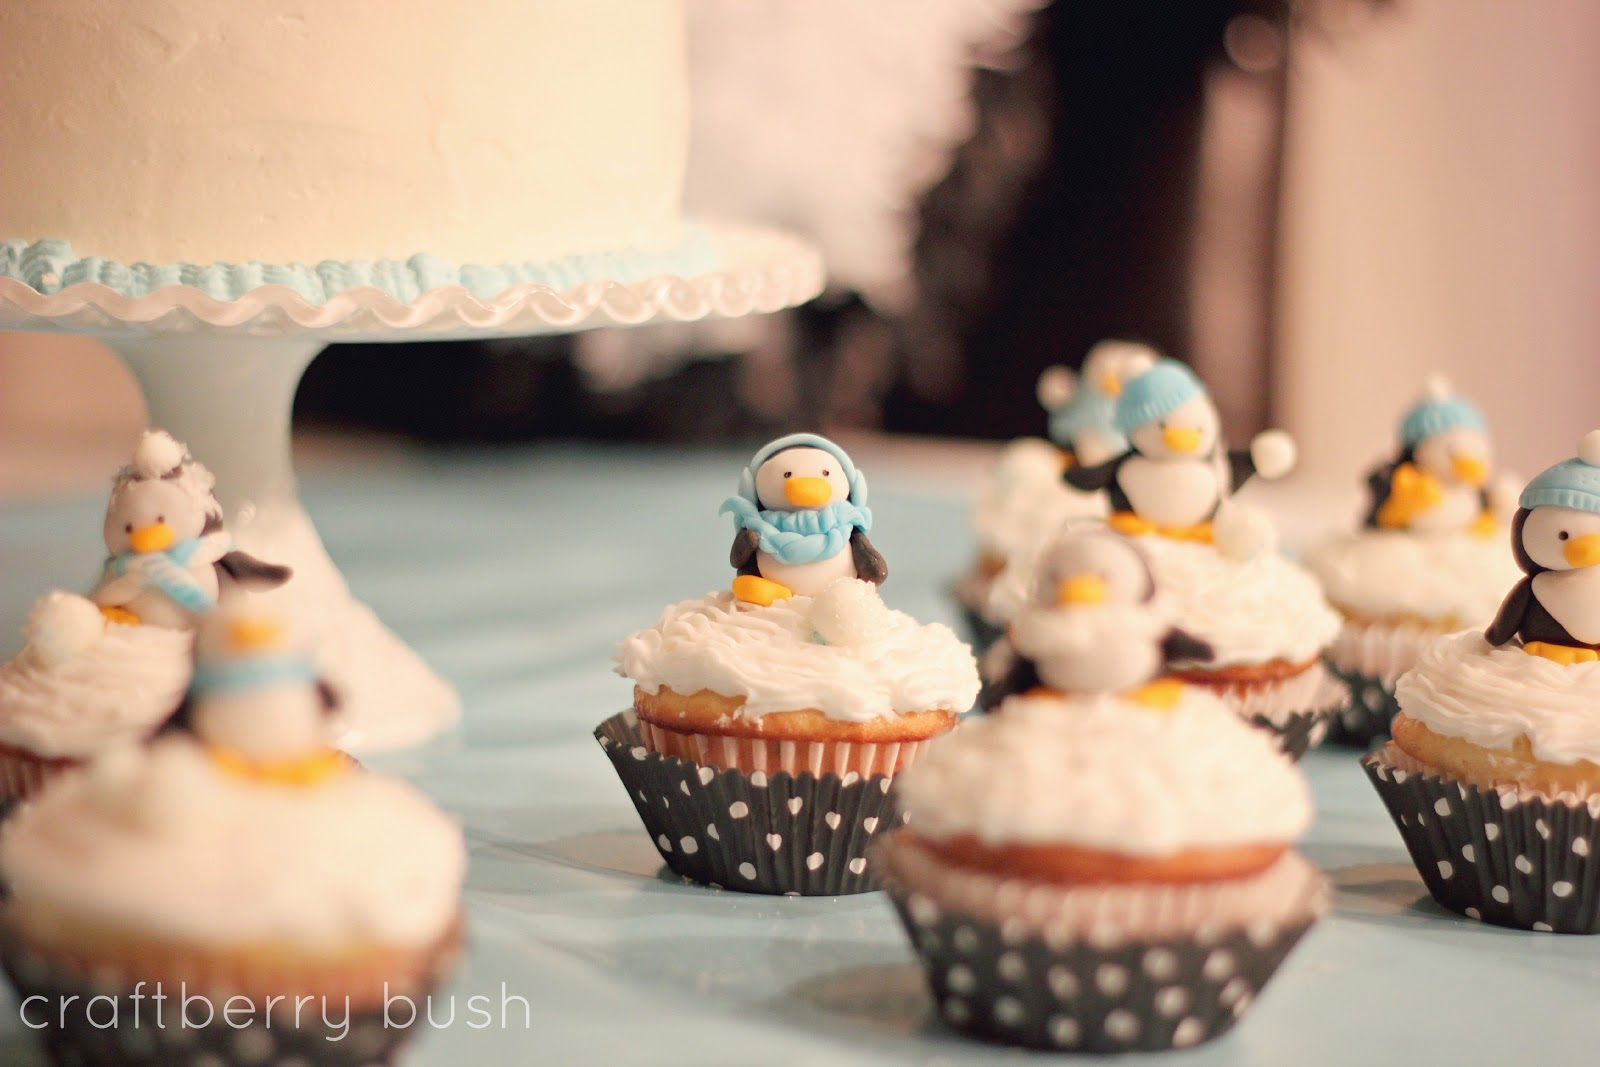 Penguin Eating Cake - ...